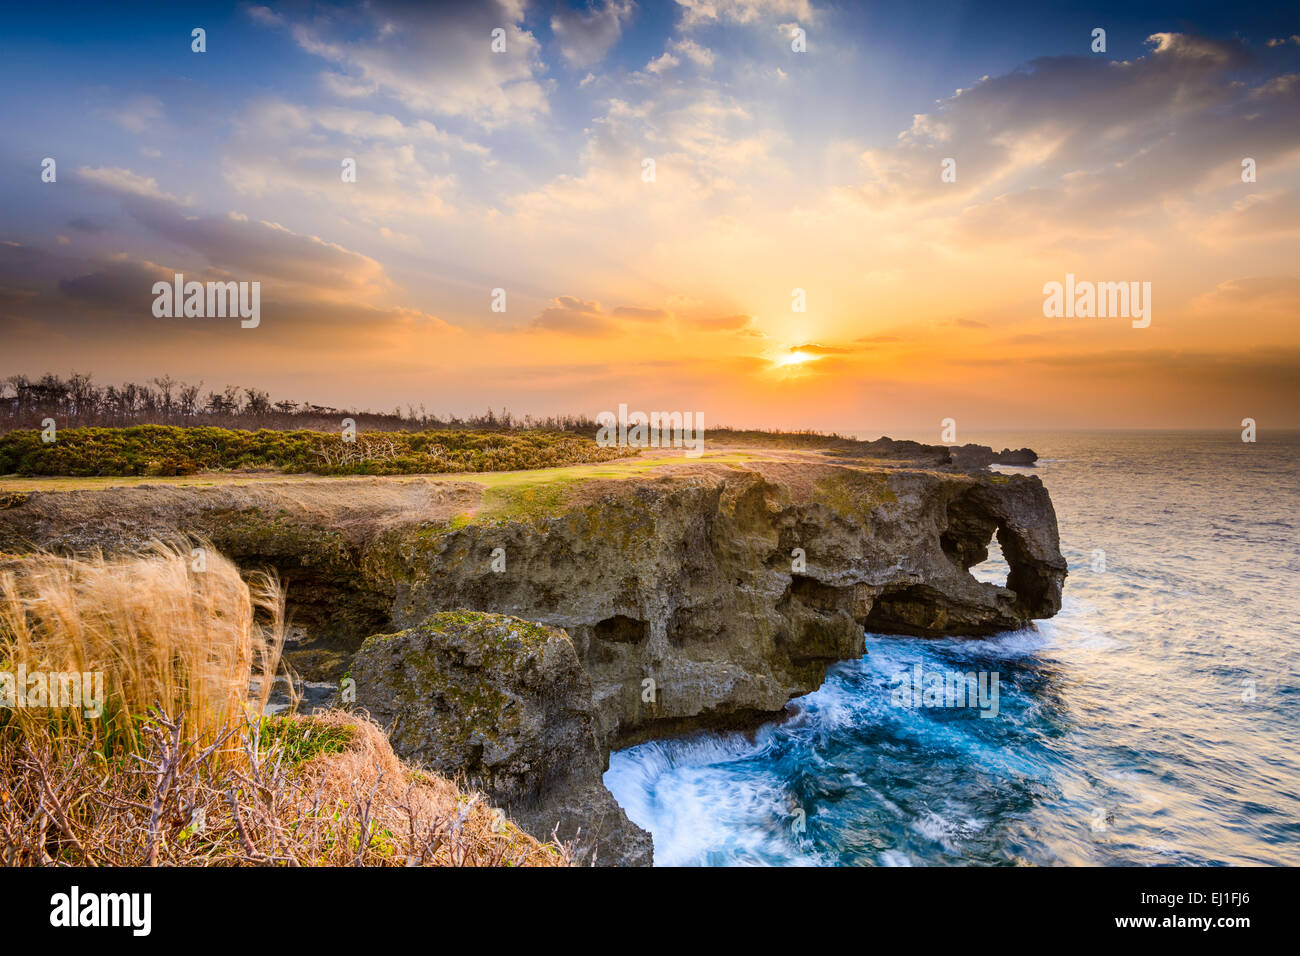 Okinawa, Japan at Manzamo Cape during sunset. - Stock Image